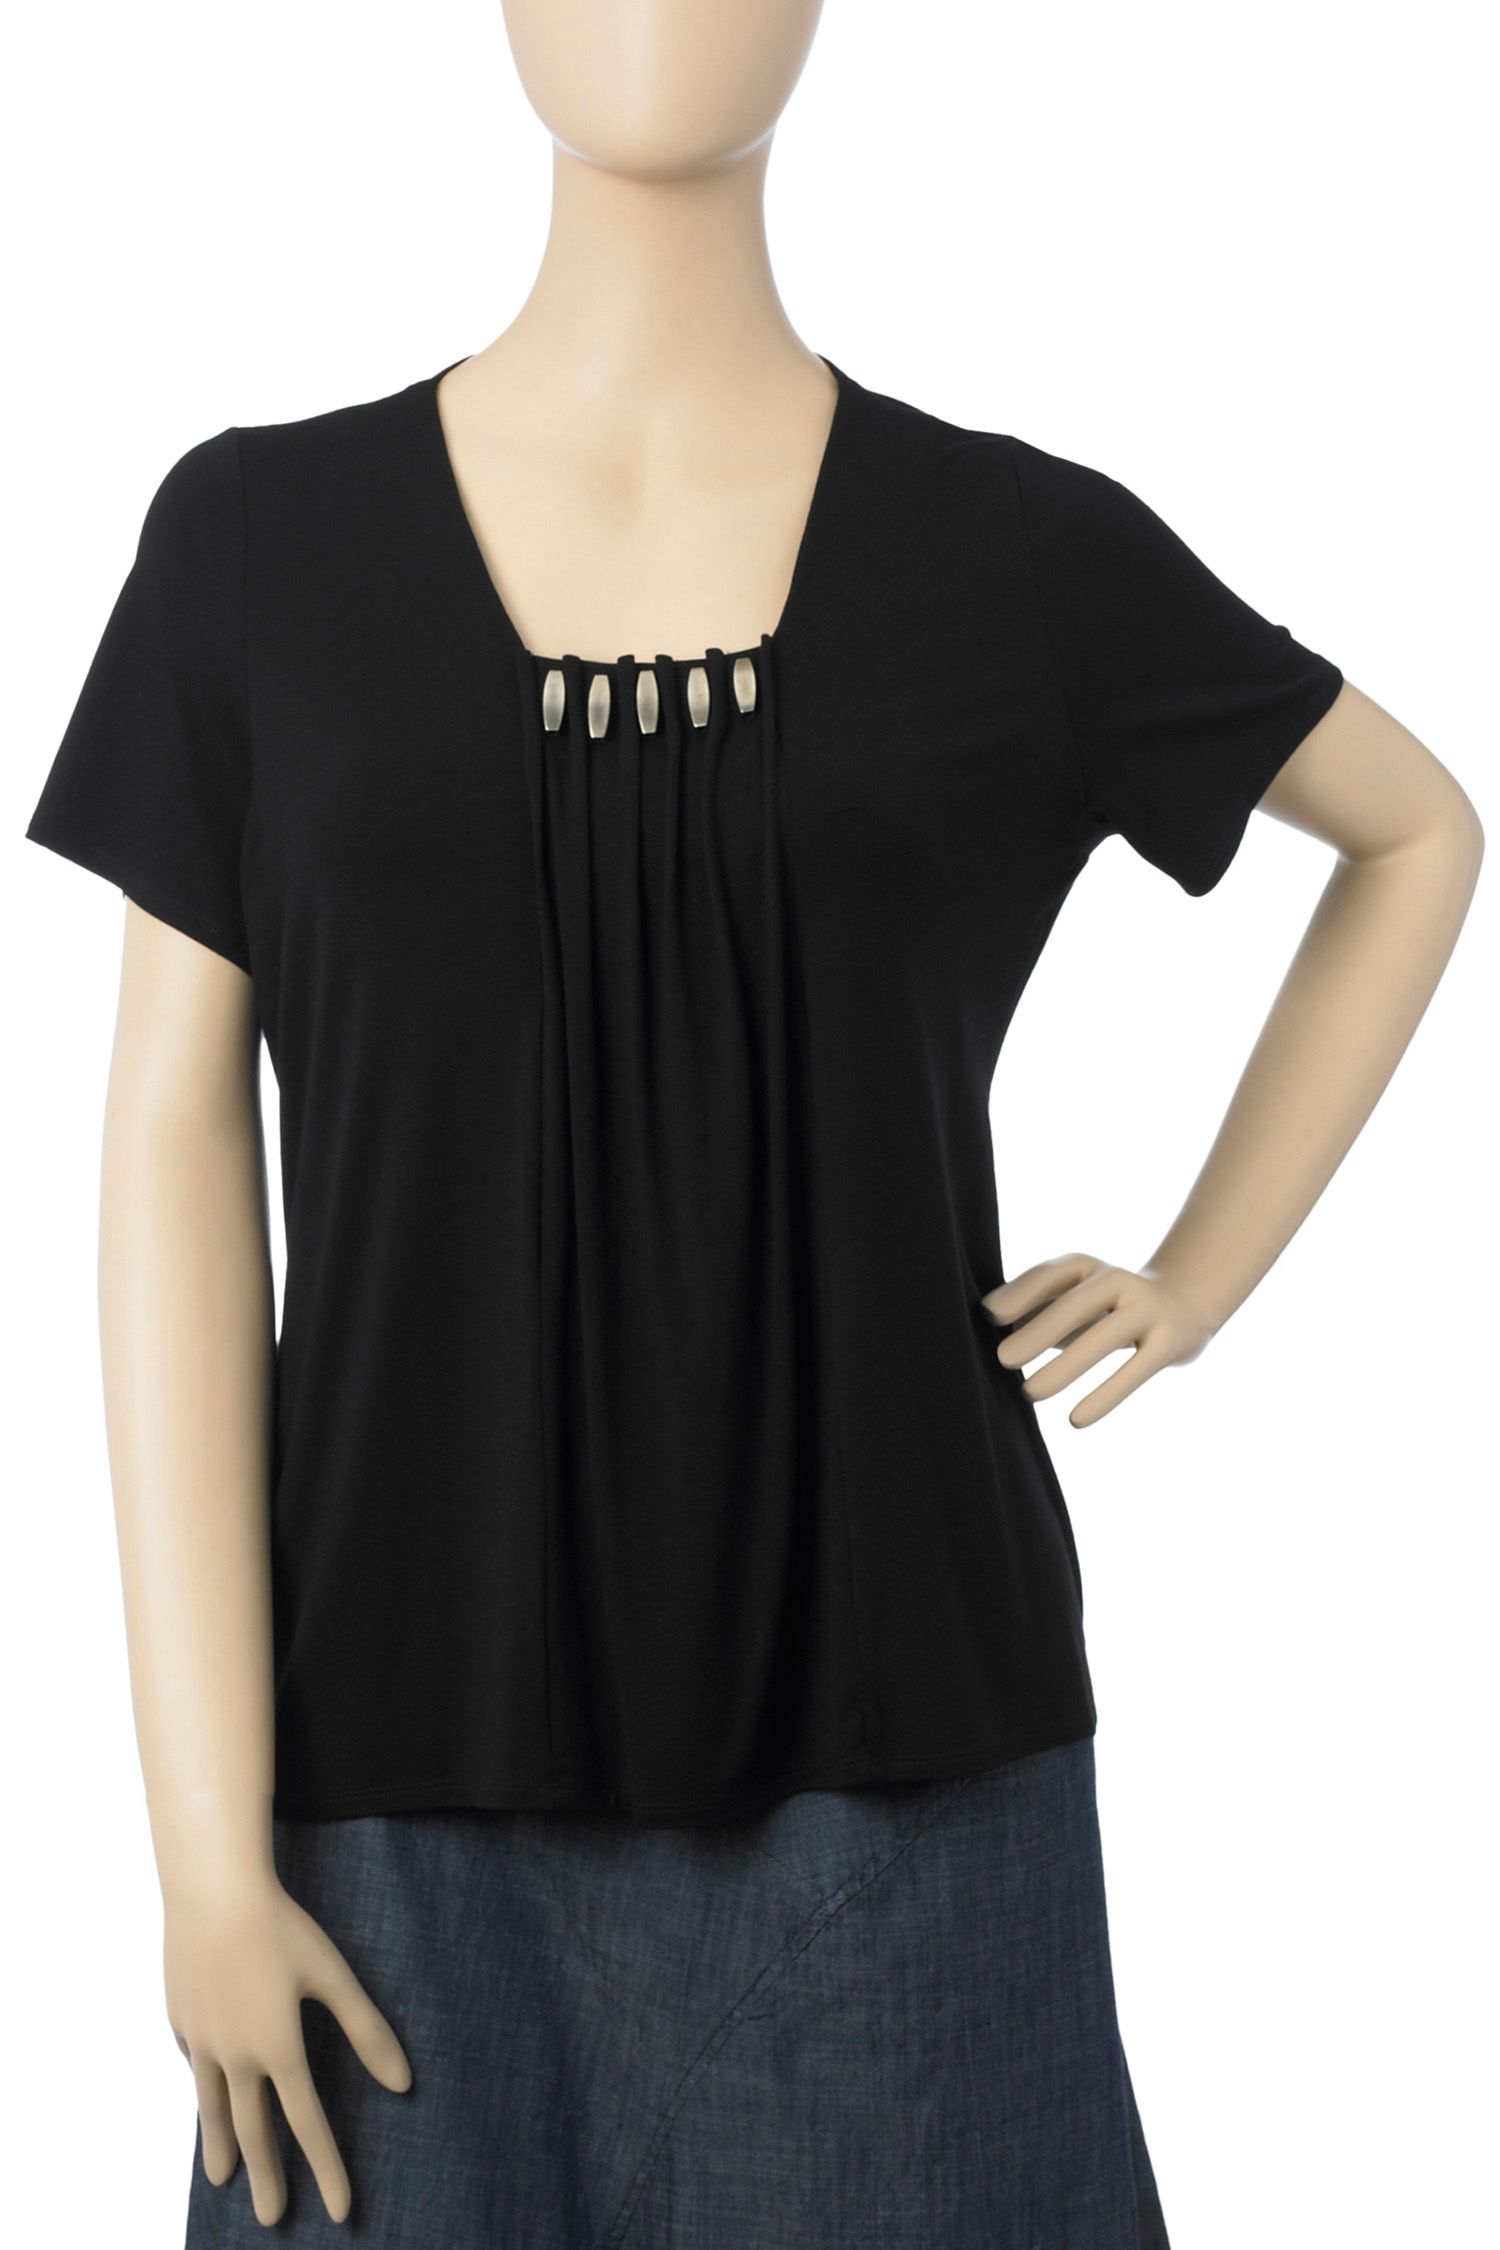 Ann Harvey Pleat beaded top Black